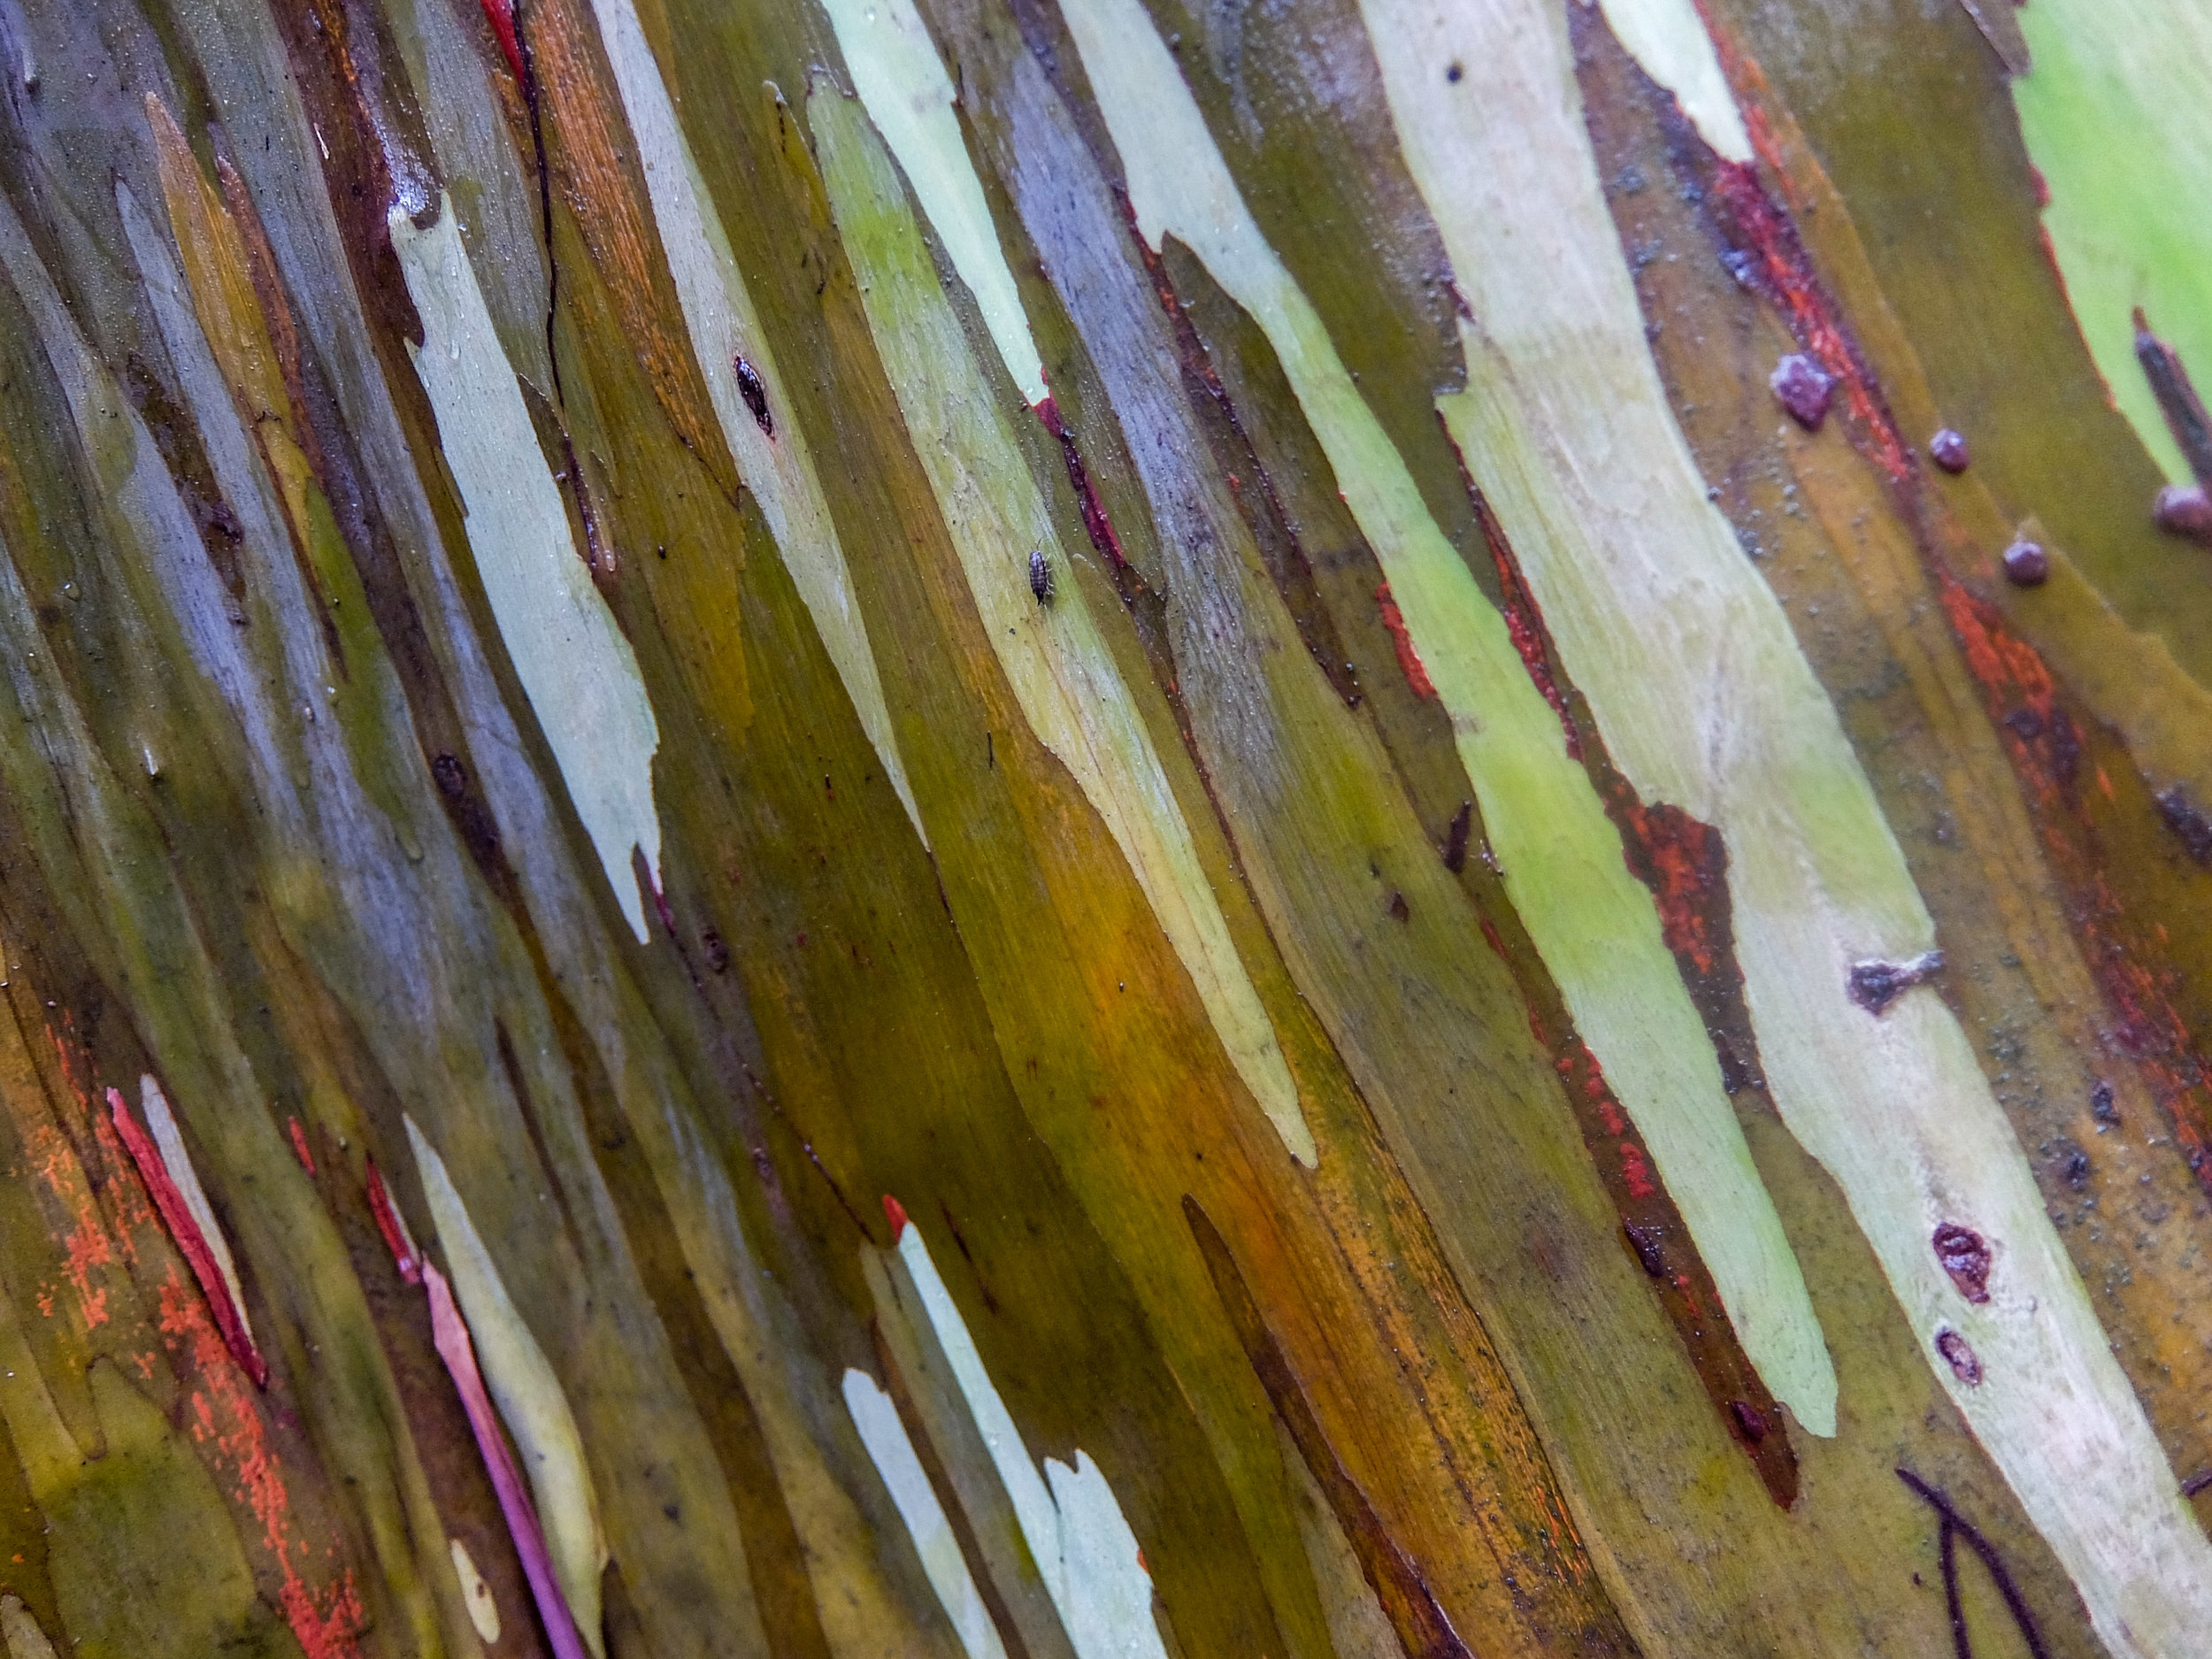 Rainbow eucalyptus are among the world's most colorful trees.